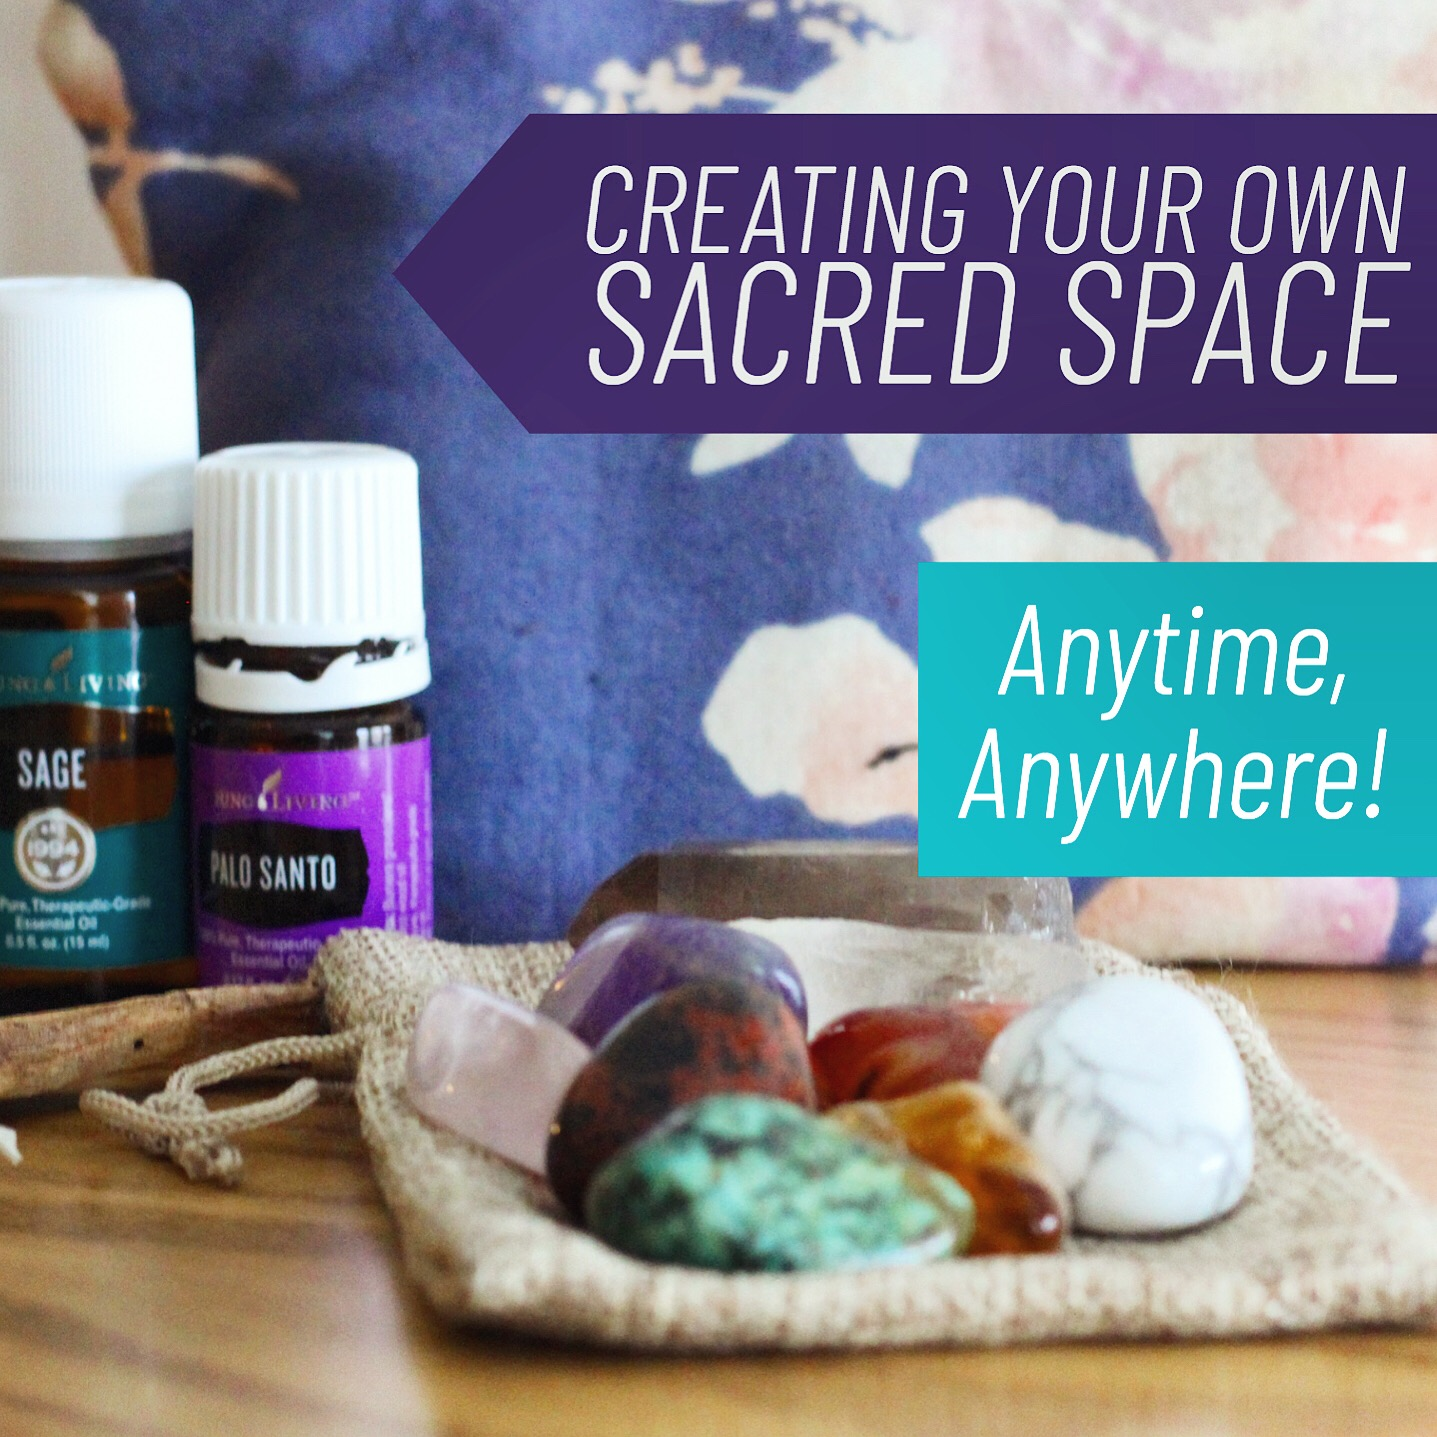 Learn my favorite ways to create your own Sacred Space!